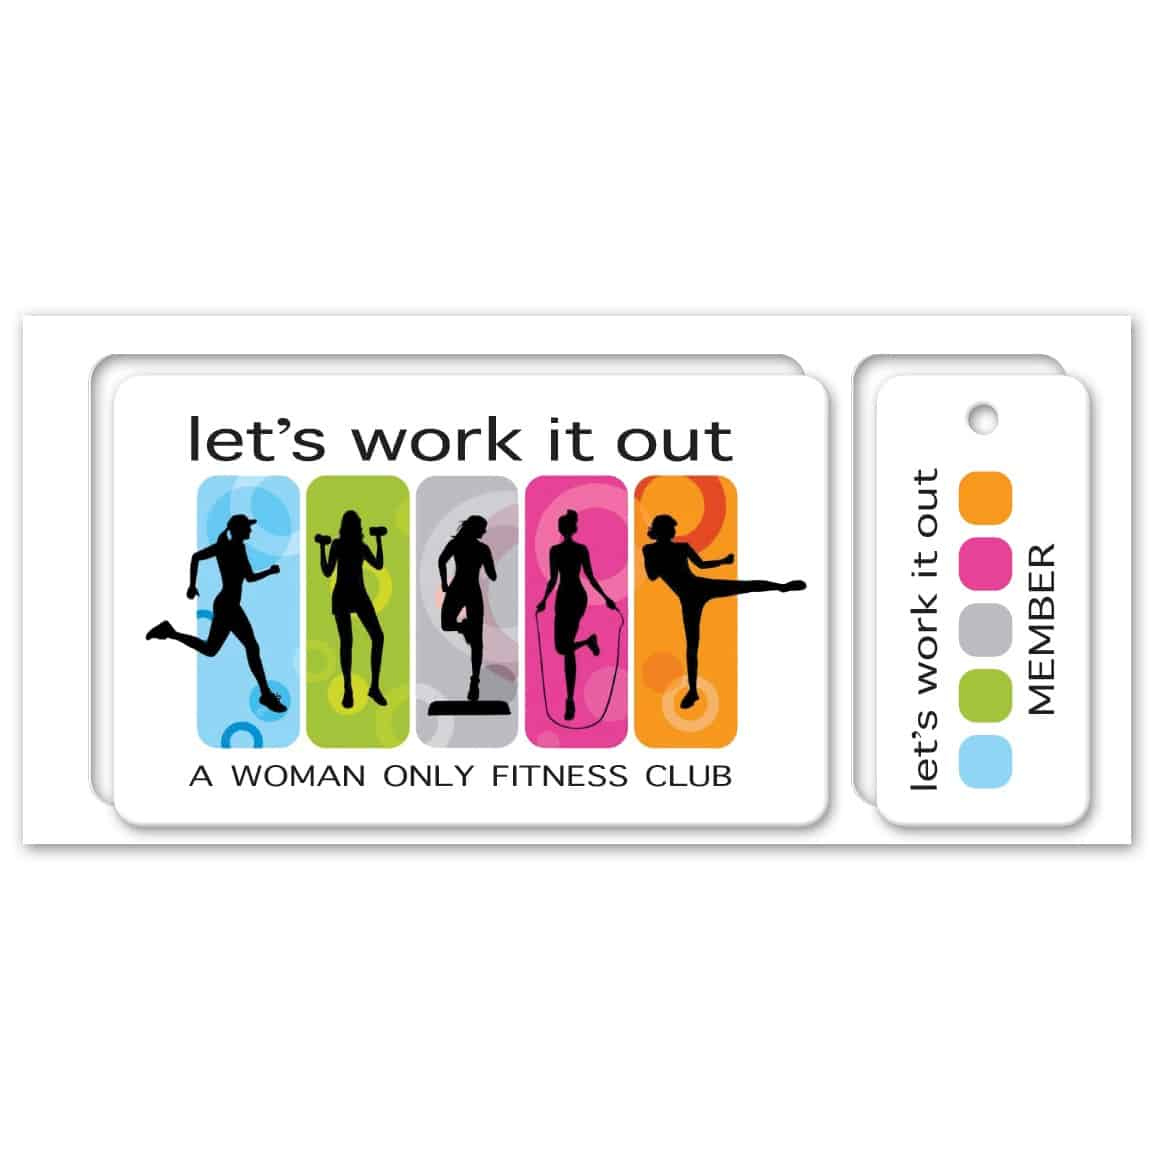 Full Color Loyalty Card with 1 Key Tag in Matrix